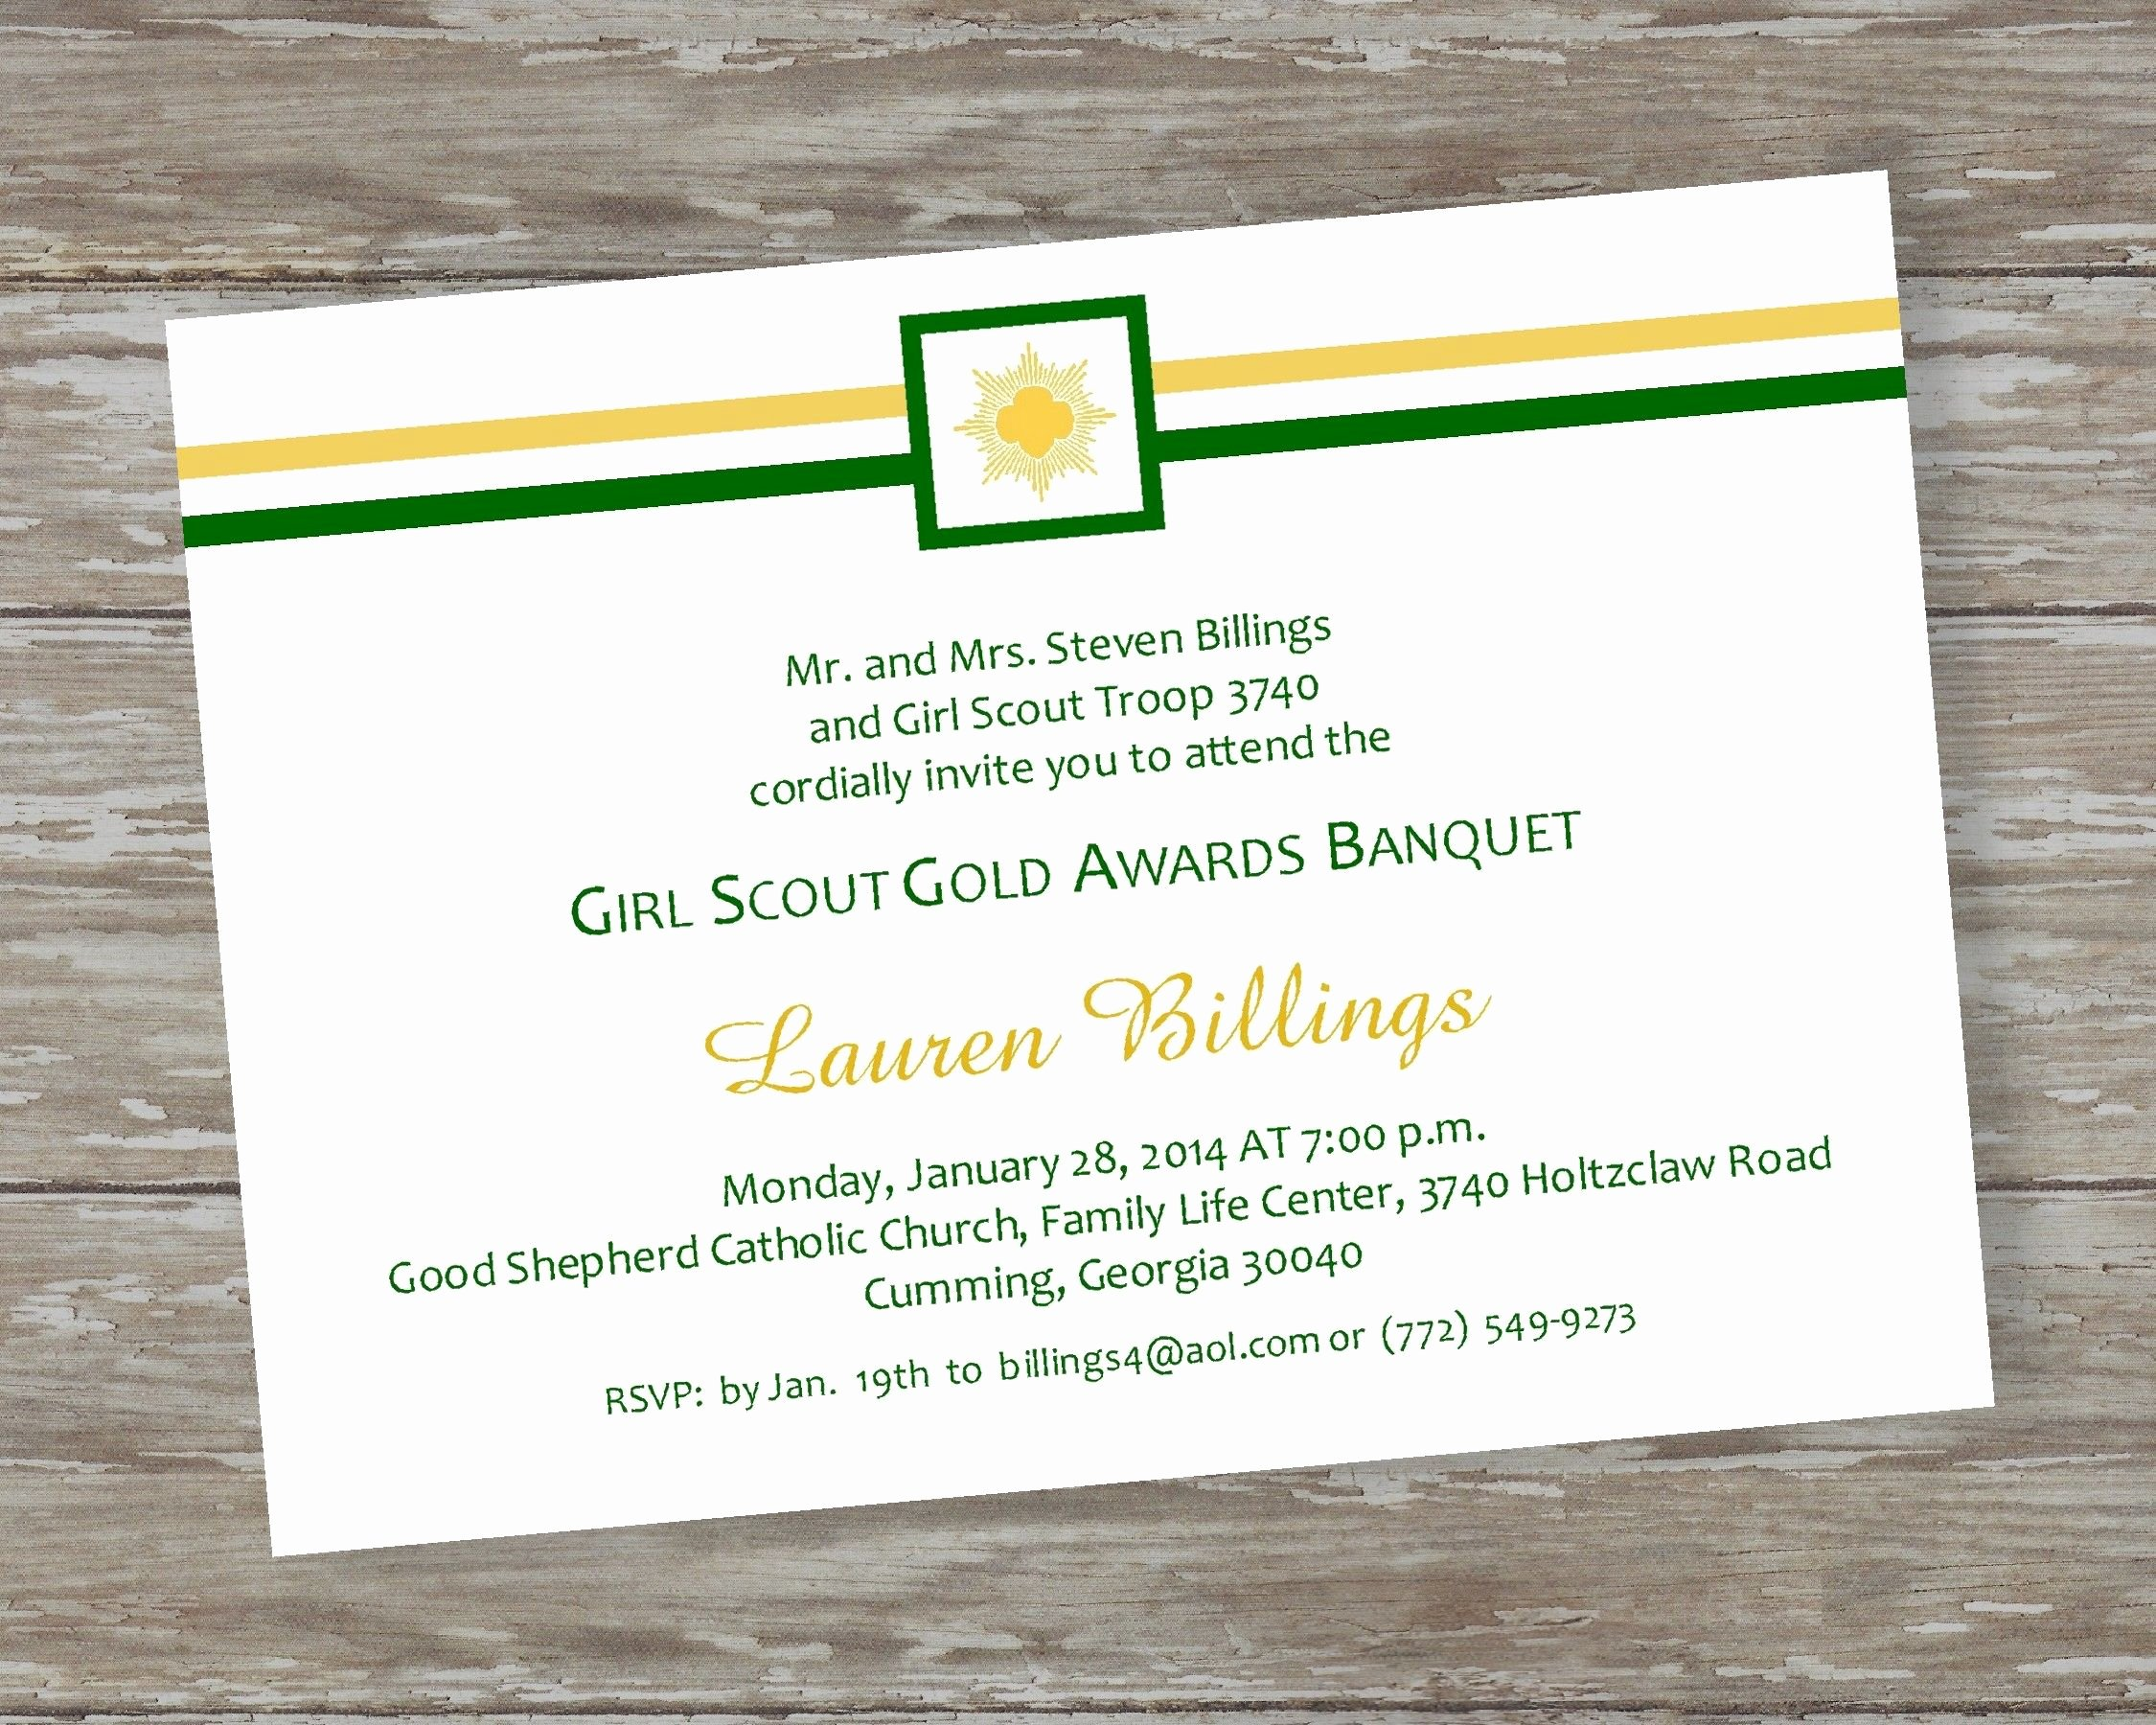 School Award Ceremony Invitation Beautiful Girl Scout Award Ceremony Invitations order the Digital